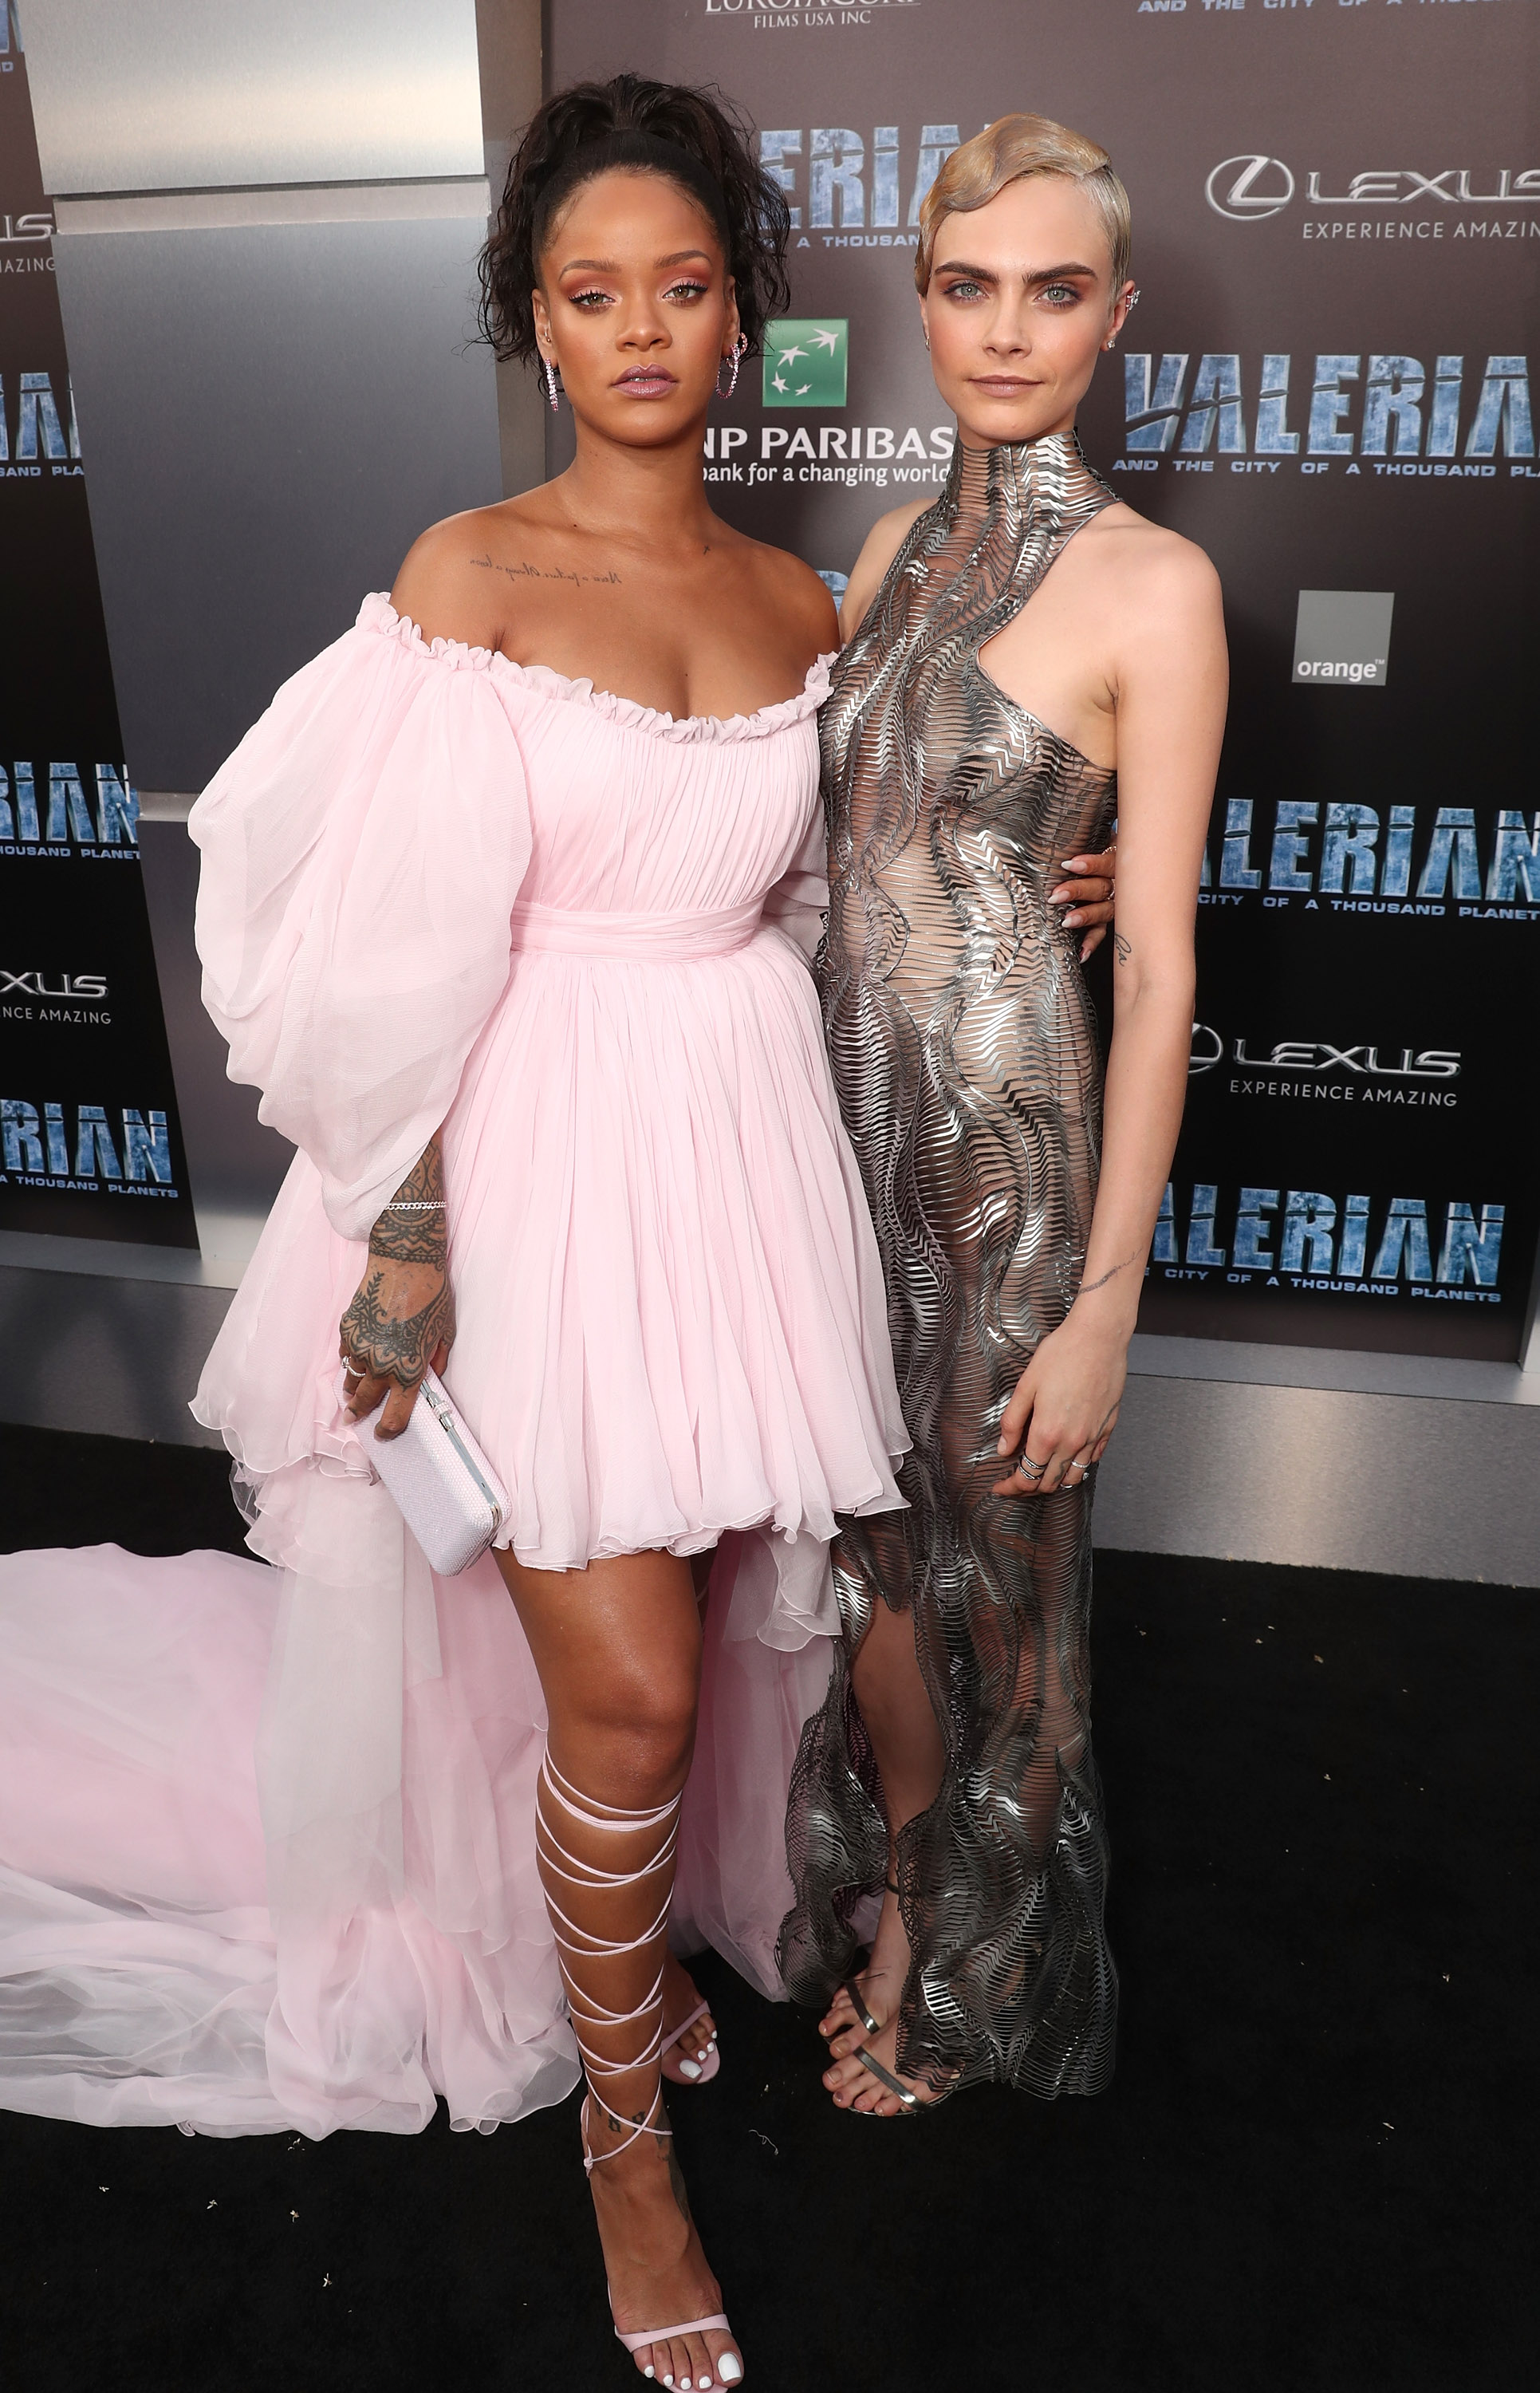 "<p>At the Los Angeles premiere of<em> Valerian and the City of a Thousand Planets</em> last night, the red carpet was turned into a <a href=""http://style.nine.com.au/haute-couture"" target=""_blank"" draggable=""false"">haute couture</a> catwalk by none other than the film's two stars-<a href=""https://style.nine.com.au/rihanna"" target=""_blank"" draggable=""false"">Rihanna </a>and <a href=""http://style.nine.com.au/cara-delevingne"" target=""_blank"" draggable=""false"">Cara Delevingne.</a></p> <p>Riri turned herself into a real-life princess in a custom-made pastel pink Giambattisa Valli gown that showed off her toned legs and lace-up Manolo Blahnik heels, completing the look with an array of dazzling Chopard jewels</p> <p>Cara went for a completely contrasting look in a silver Iris Van Herper couture high-neck gown which emulated the robotic, futuristic and outer space theme of the sci-fi flick.</p> <p>The model-turned-actress softened the look of her sci-fi gown by styling her super short hair in retro flapper waves that added a touch of elegance.</p> <p>The pair were joined by a line-up of A-list friends such as Kendall Jenner, Poppy Delevingne and up-and-coming actress, Sasha Lane, who arrived on the arm of Moschino's creative director Jeremy Scott.</p> <p>Click through to see all the style highlights from the premiere of <em>Valerian and the City of a Thousand Planets.</em></p>"